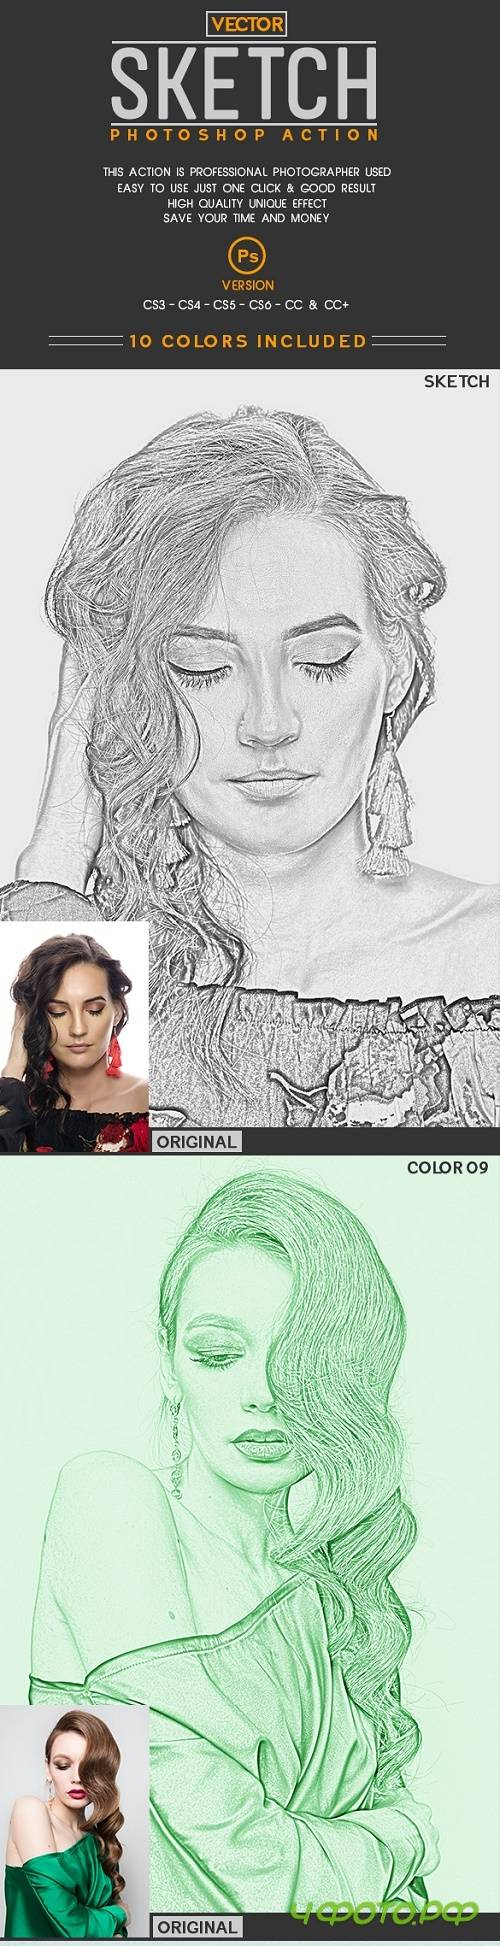 Vector Sketch Photoshop Action 22569551